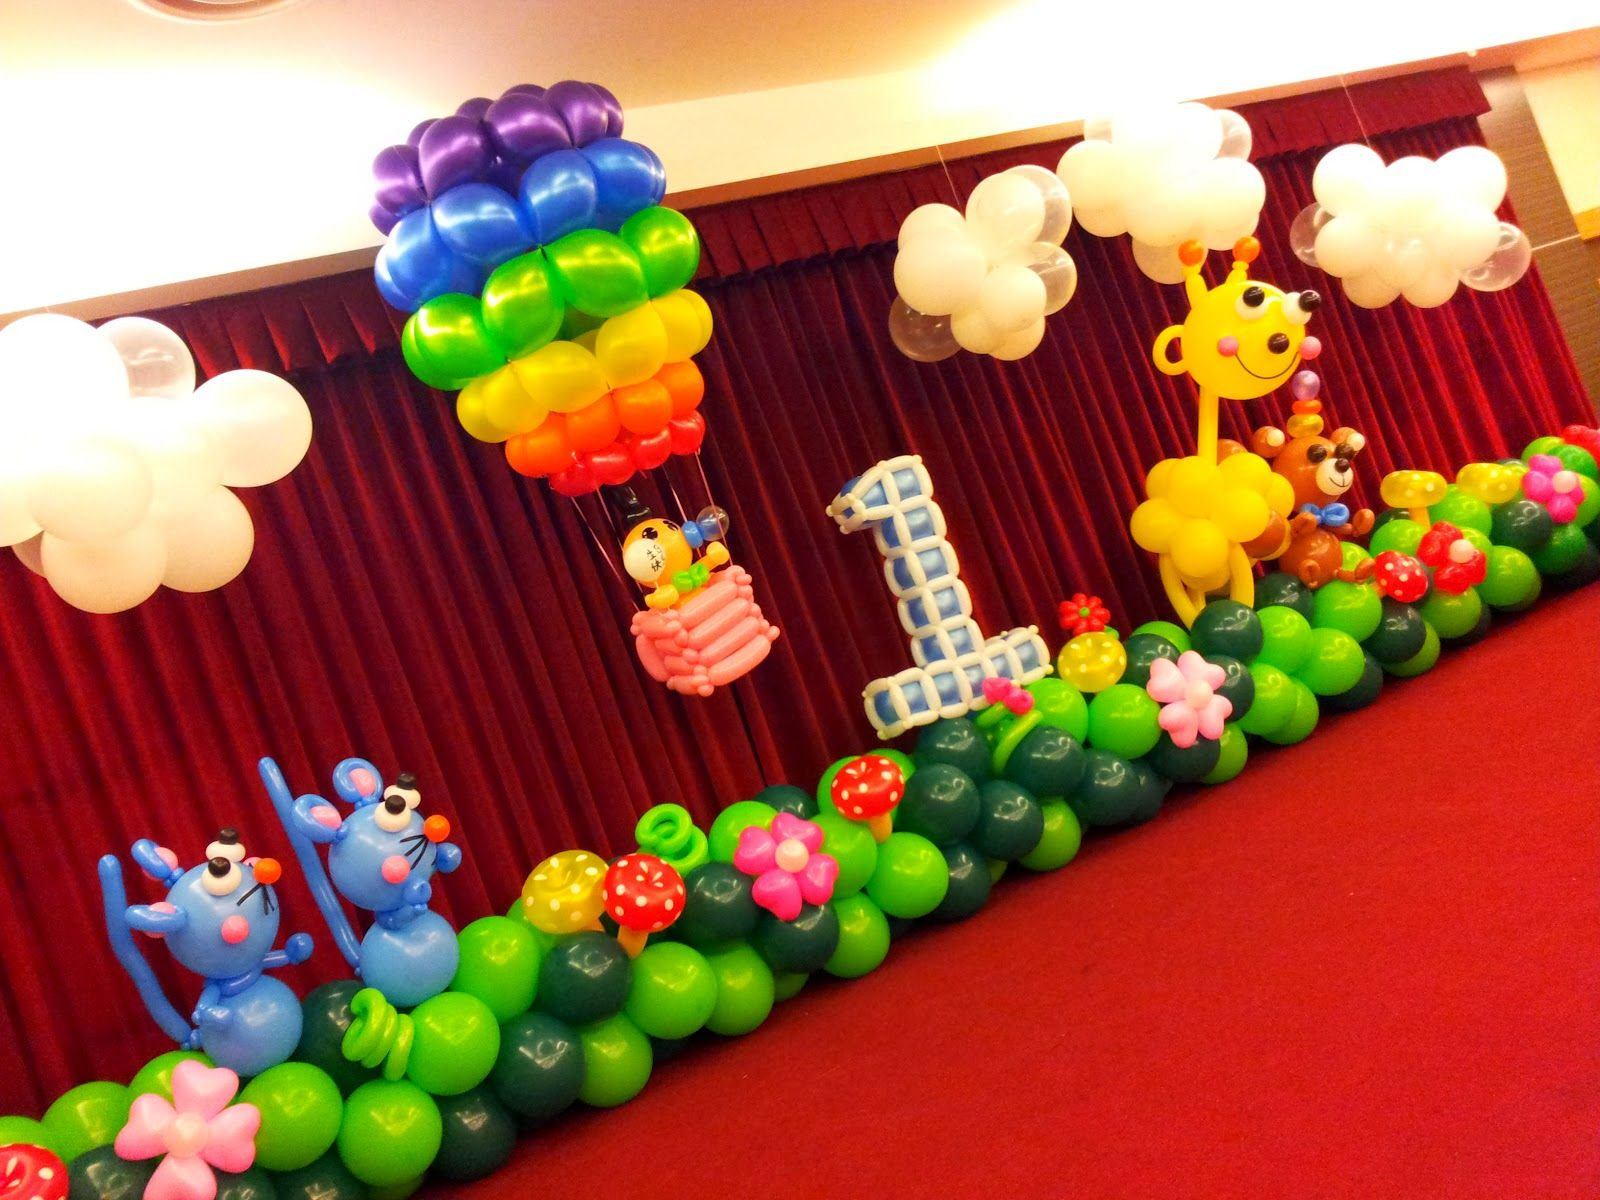 Party balloons decorations - Balloon Decoration